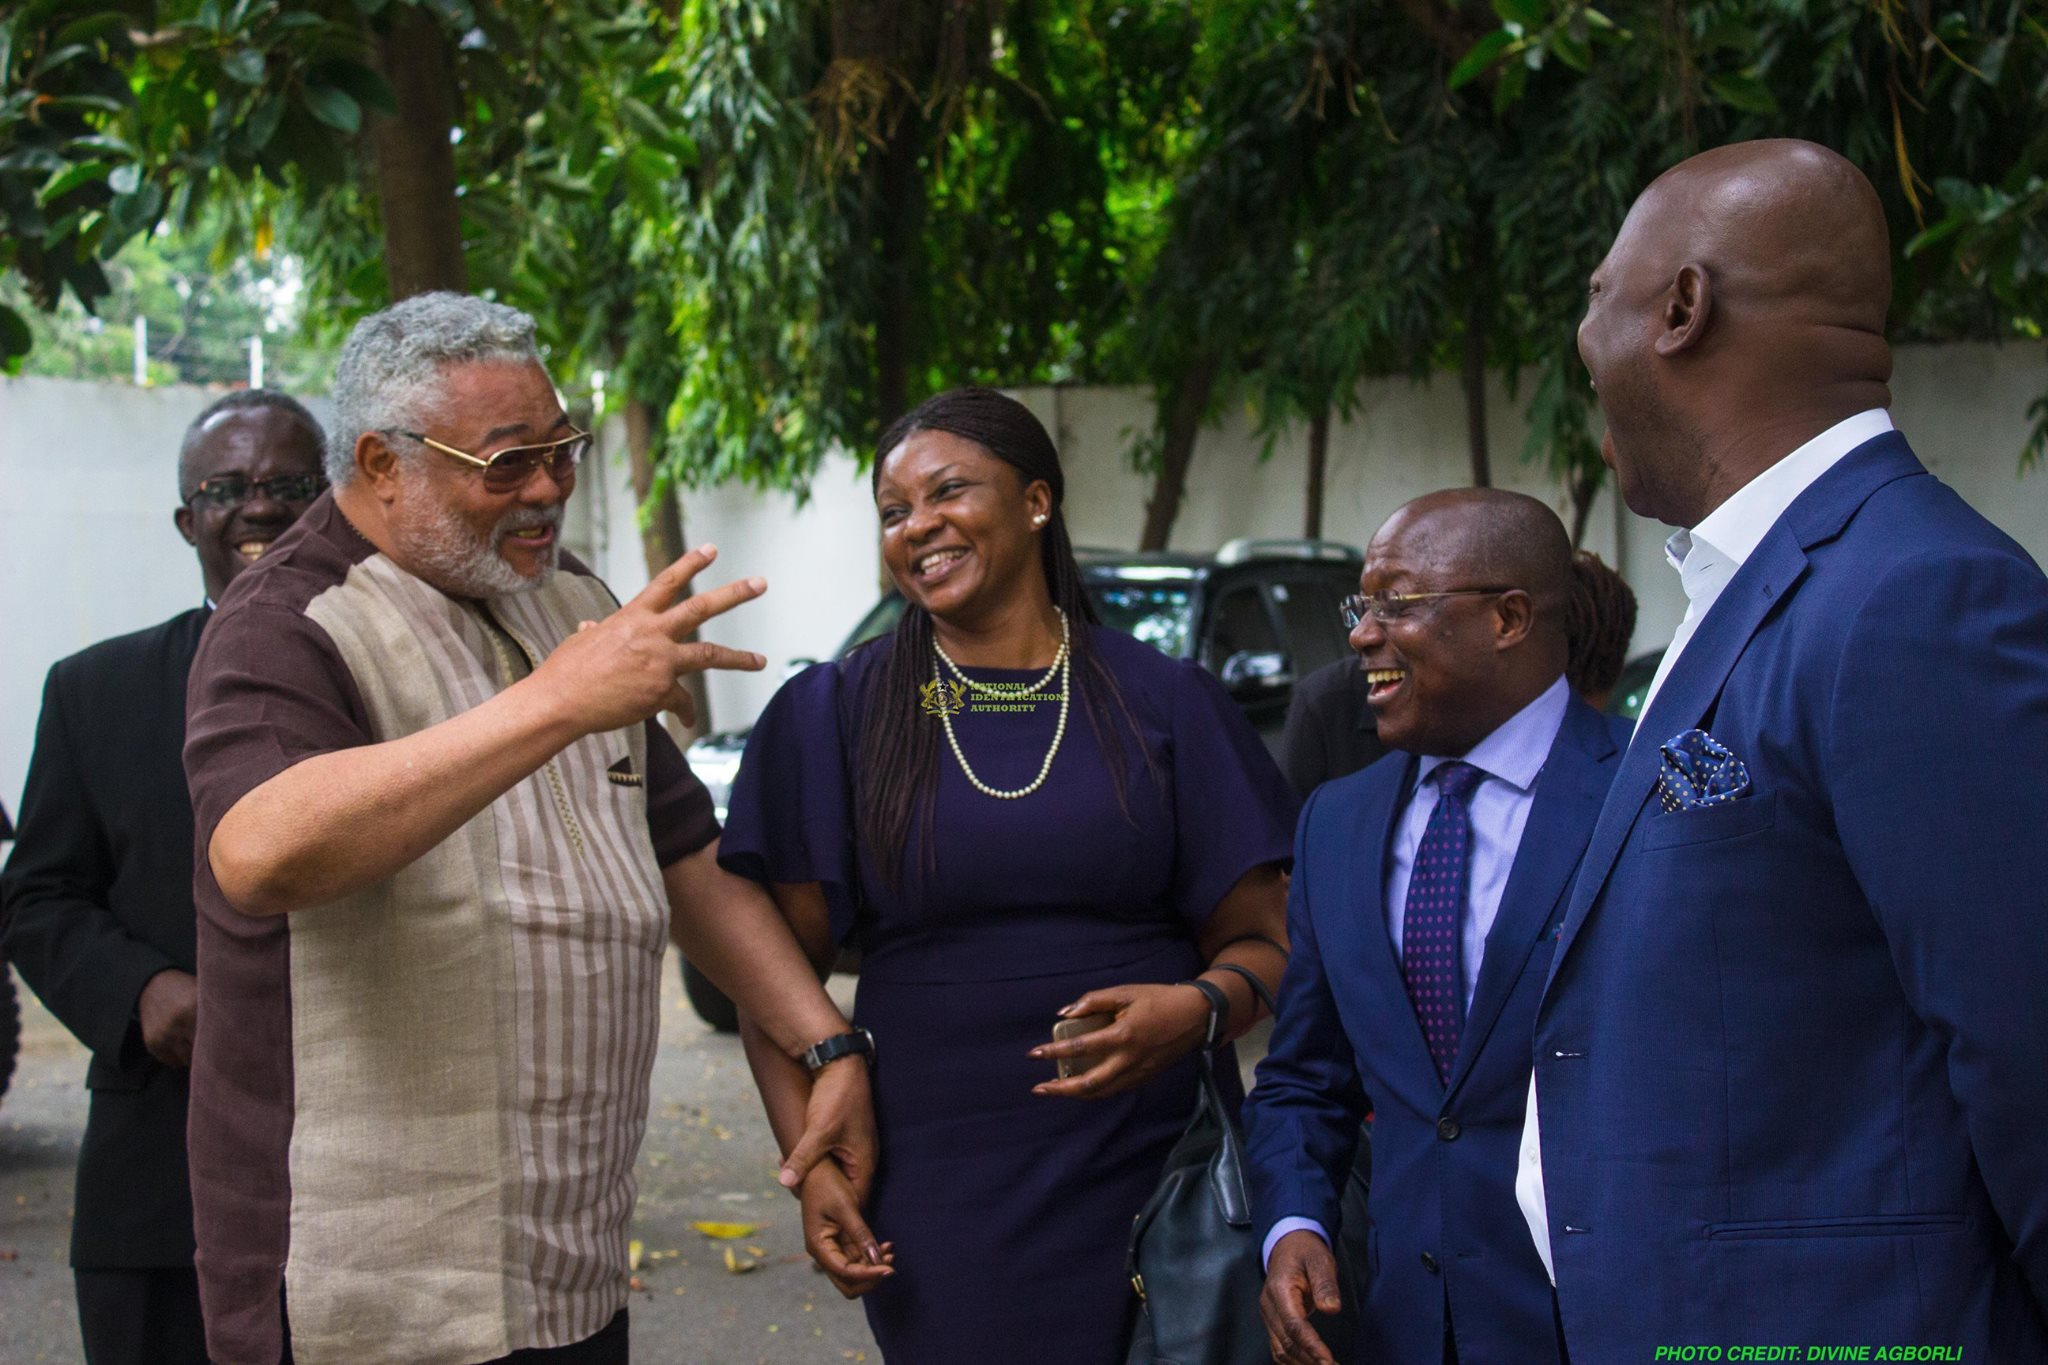 NIA Pays Courtesy call on Ex President Rawlings — Accra, Ghana. 8th August, 2017